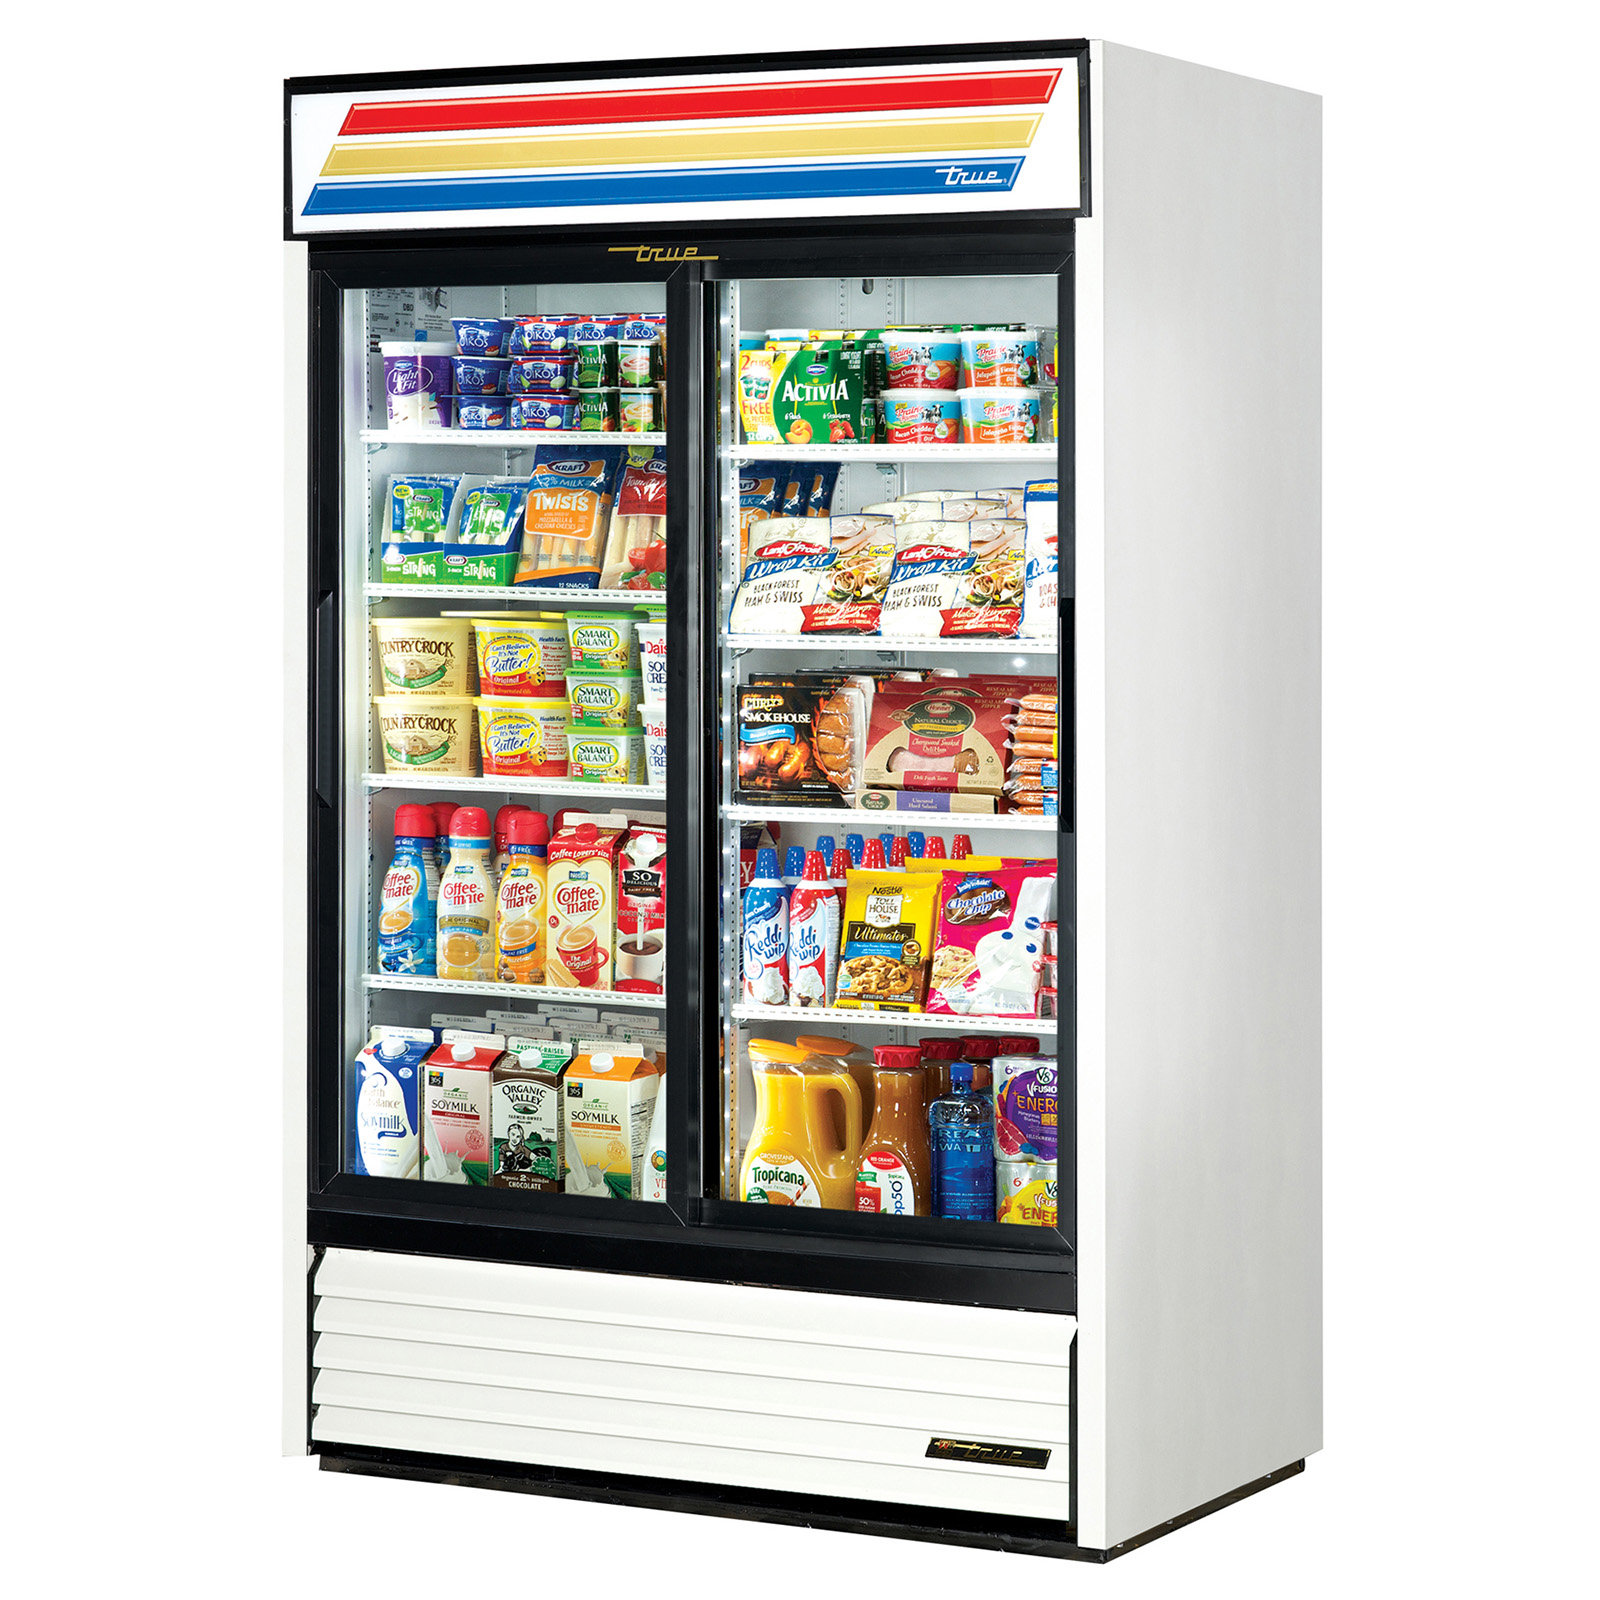 GDM-45-LD True - Refrigerated Merchandiser two-section